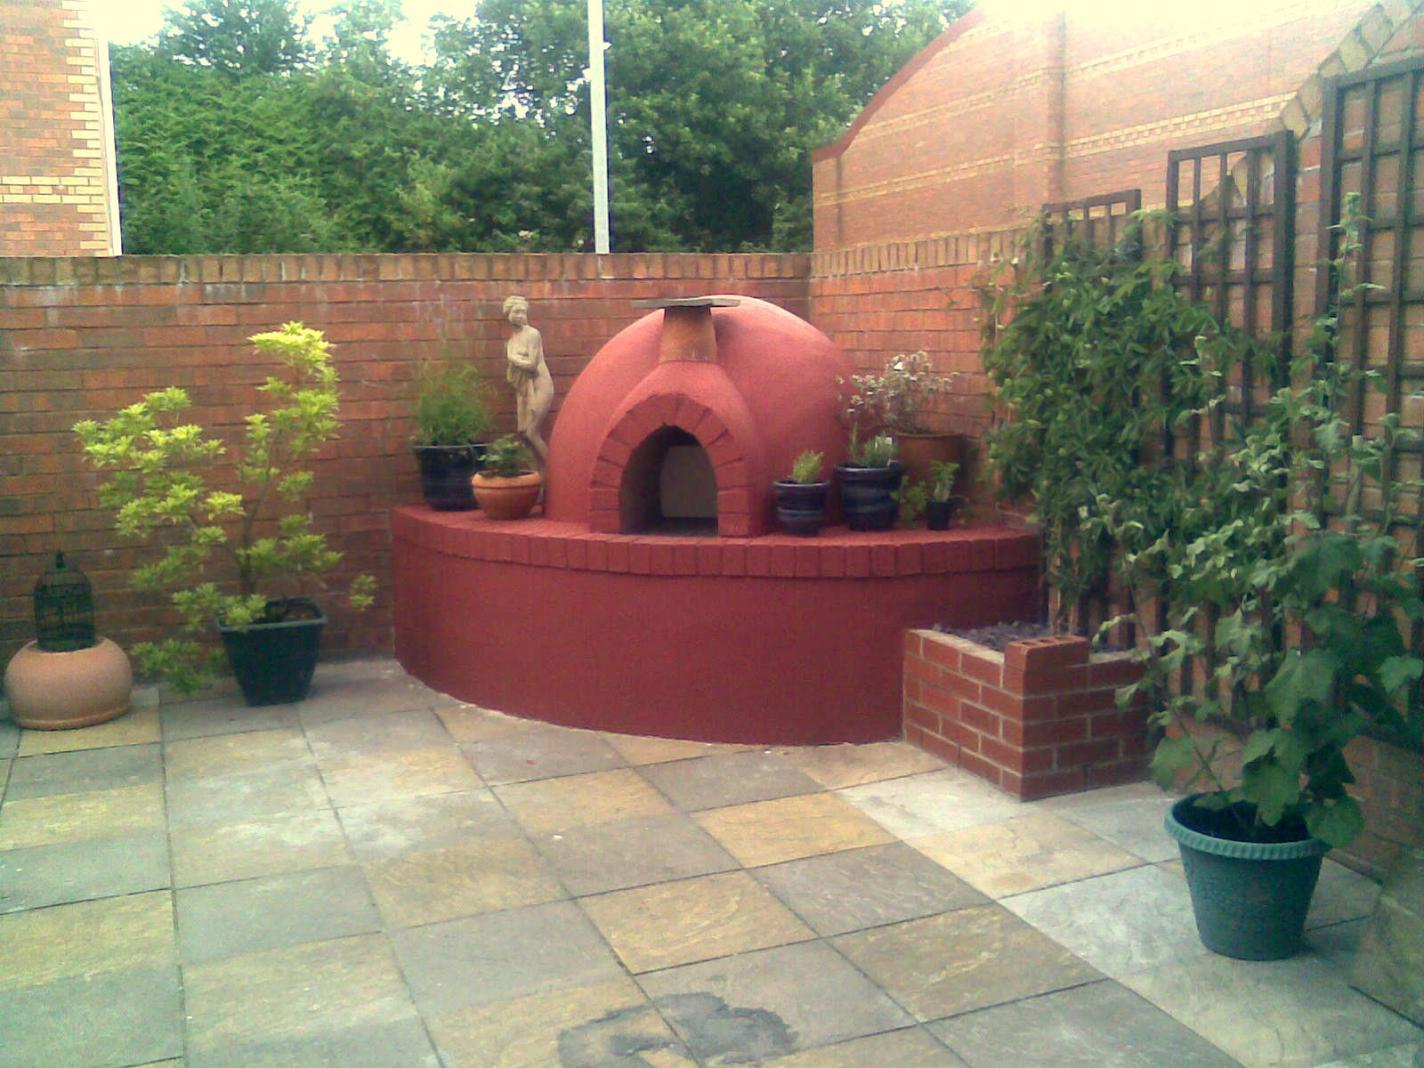 Building a Pizza Oven for your Patio or Porch - Associated Content